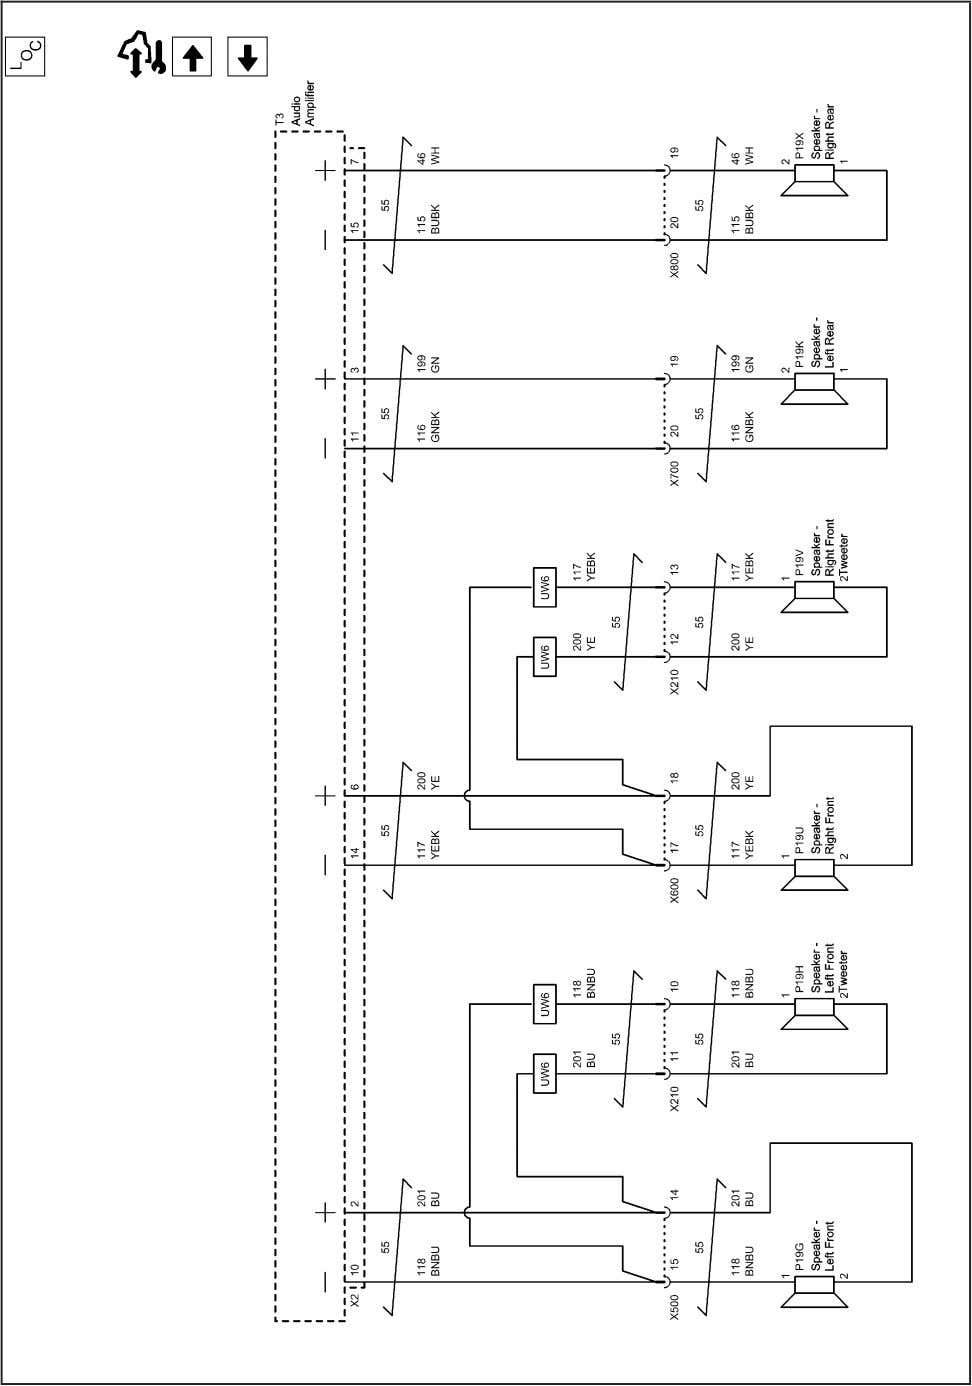 and Navigation 2202872 Radio/Navigation System Schematics (Door Speakers (LHD with UQG)) 2010 - Cruze Service Manual